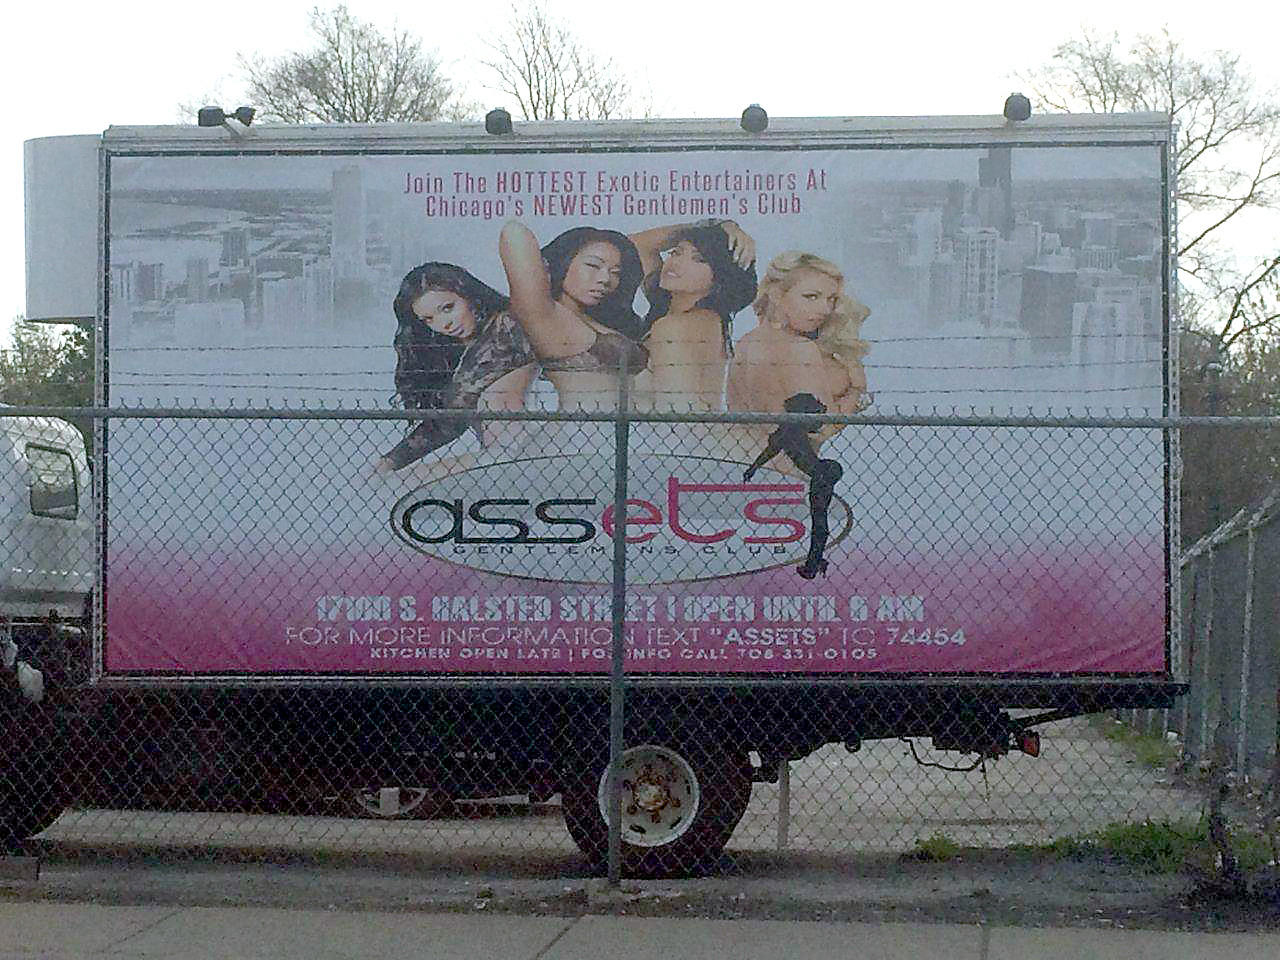 A roaming truck billboard advertising Club Assets Gentlemans Club in Harvey. The truck was parked at 147th and Halsted Street across from King of Diamonds.